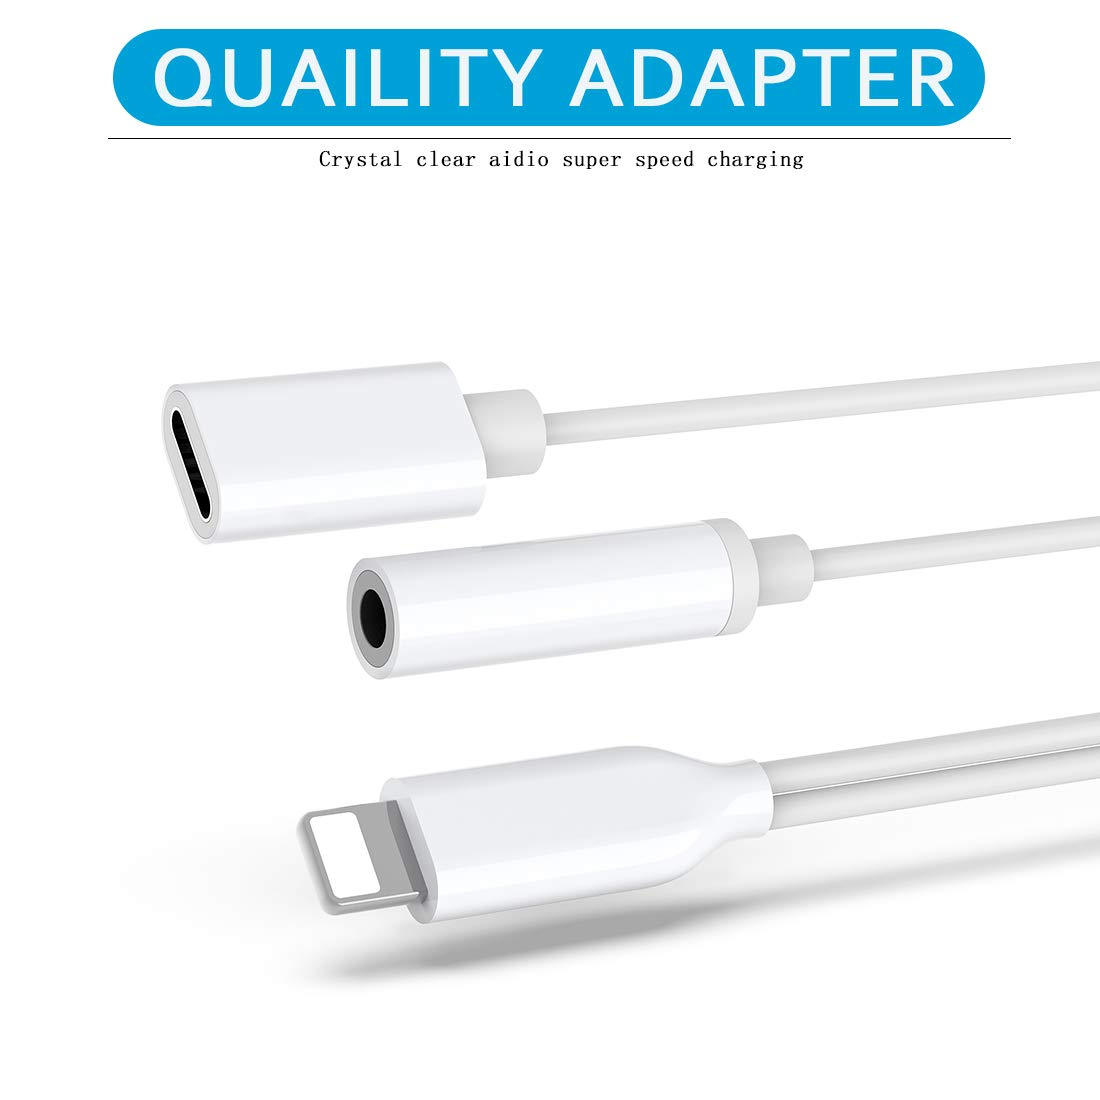 Headphone Adapter for iPhone X for iPhone Dongle 3.5 mm Jack Aux Adapter 2 in 1 Earphone Splitter Adapter Charger Cables /& Audio Connector for iPhone Xs//Xs Max//XR// 8//8 Plus //7//7 Plus Support All iOS